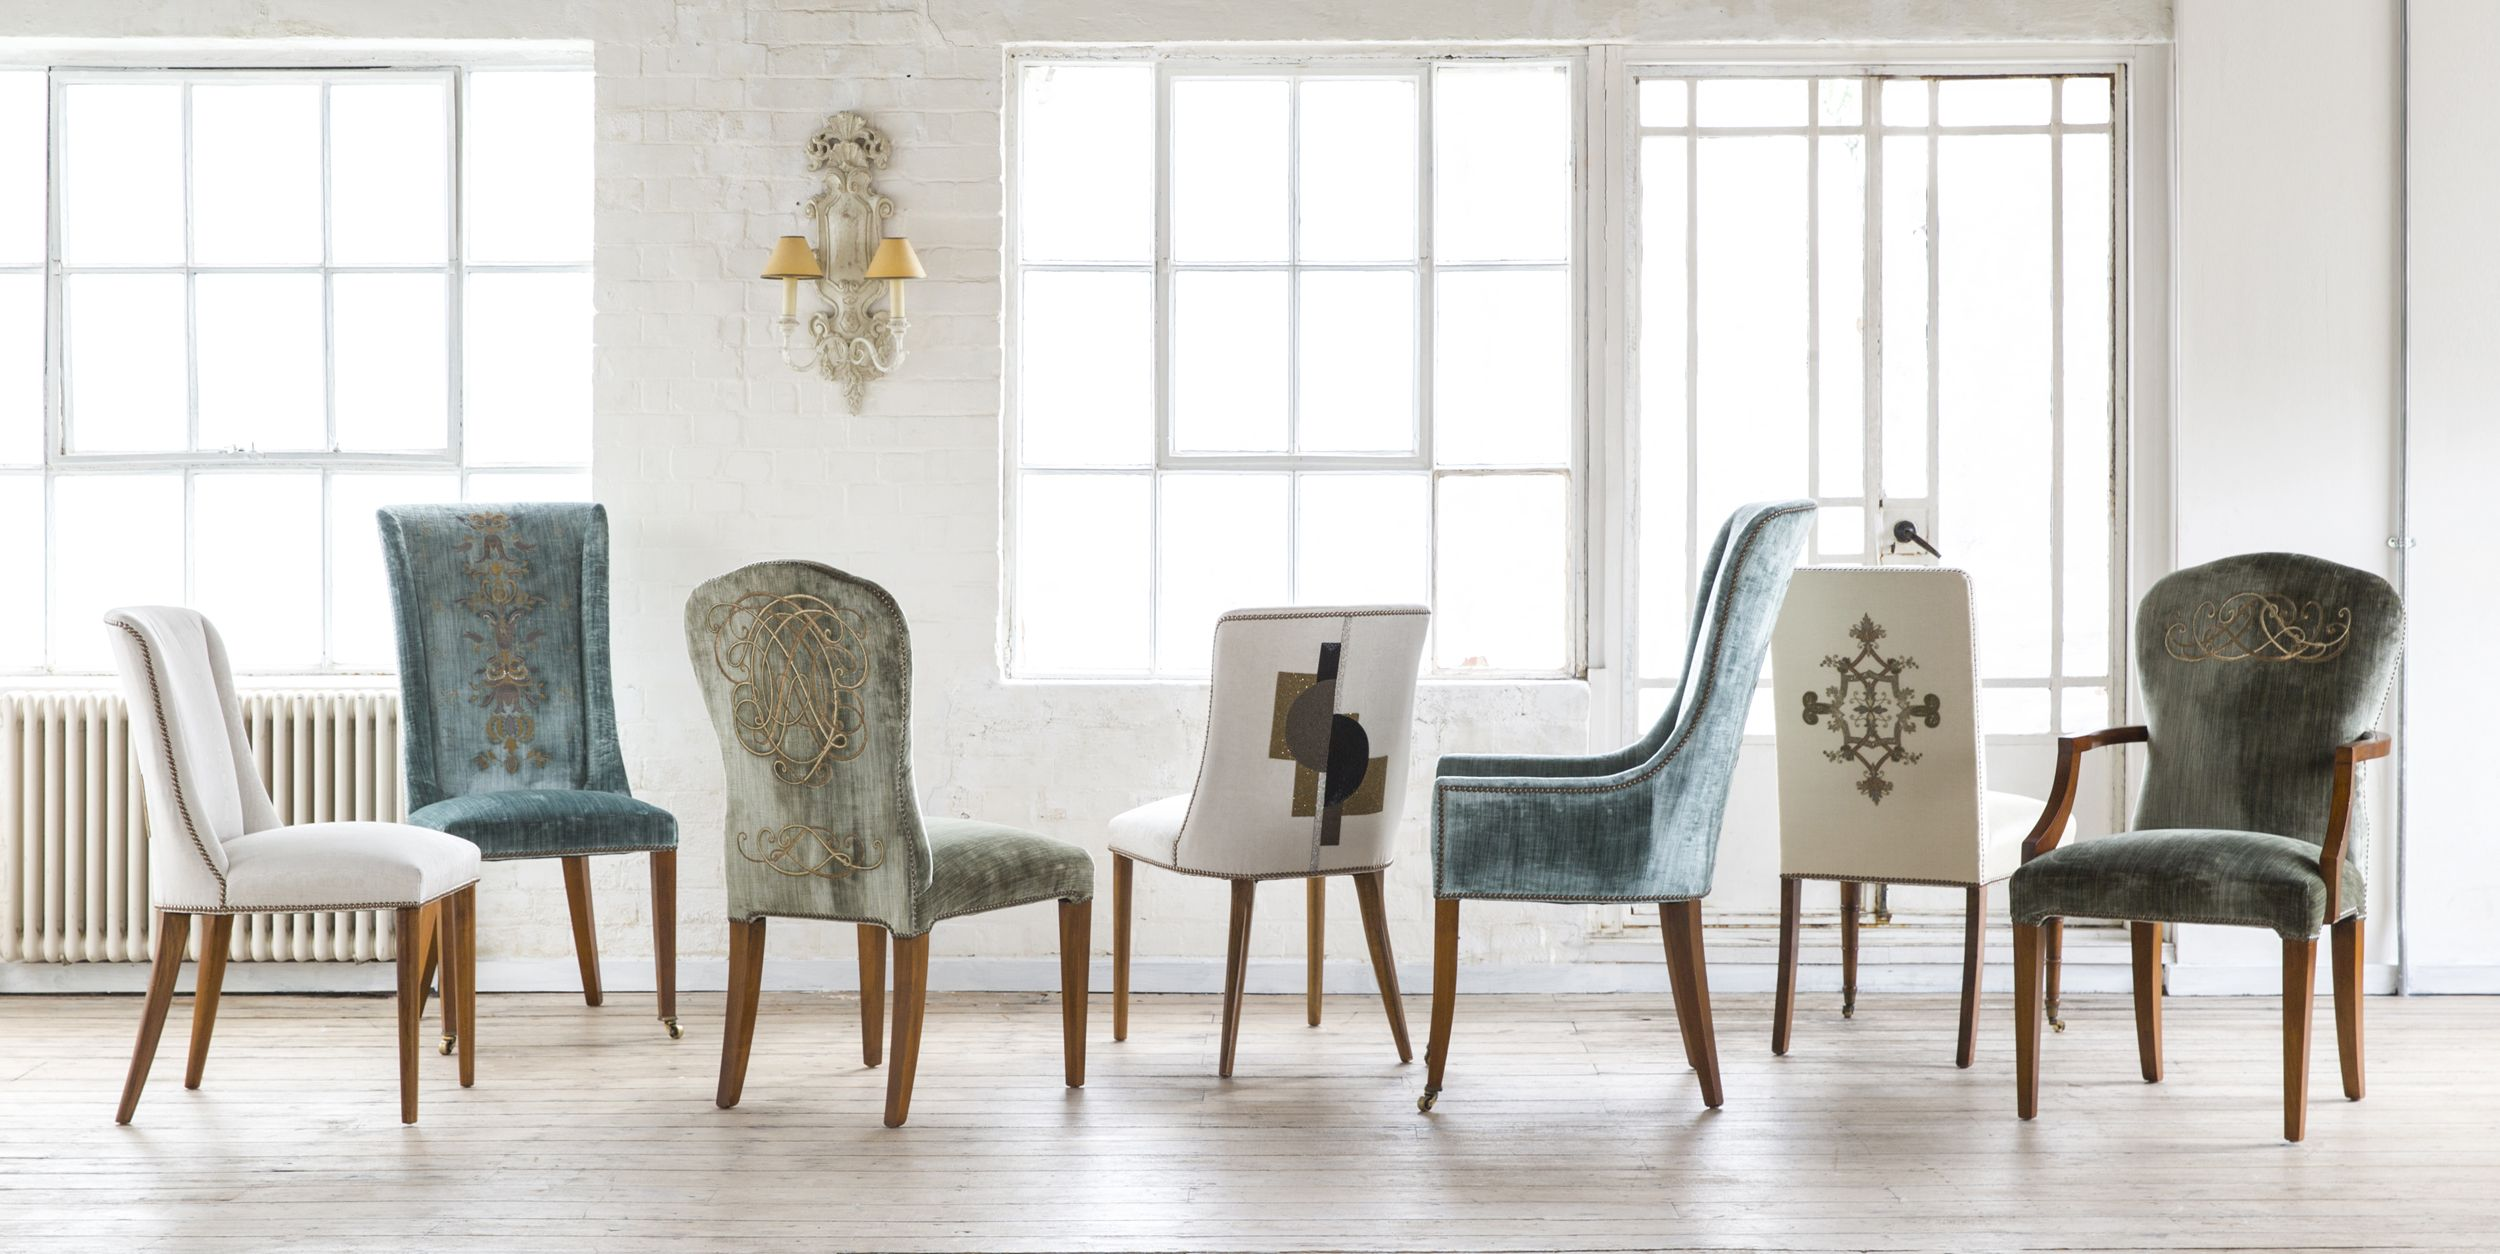 Dining Chair Collection From Beaumont Fletcher From Left To